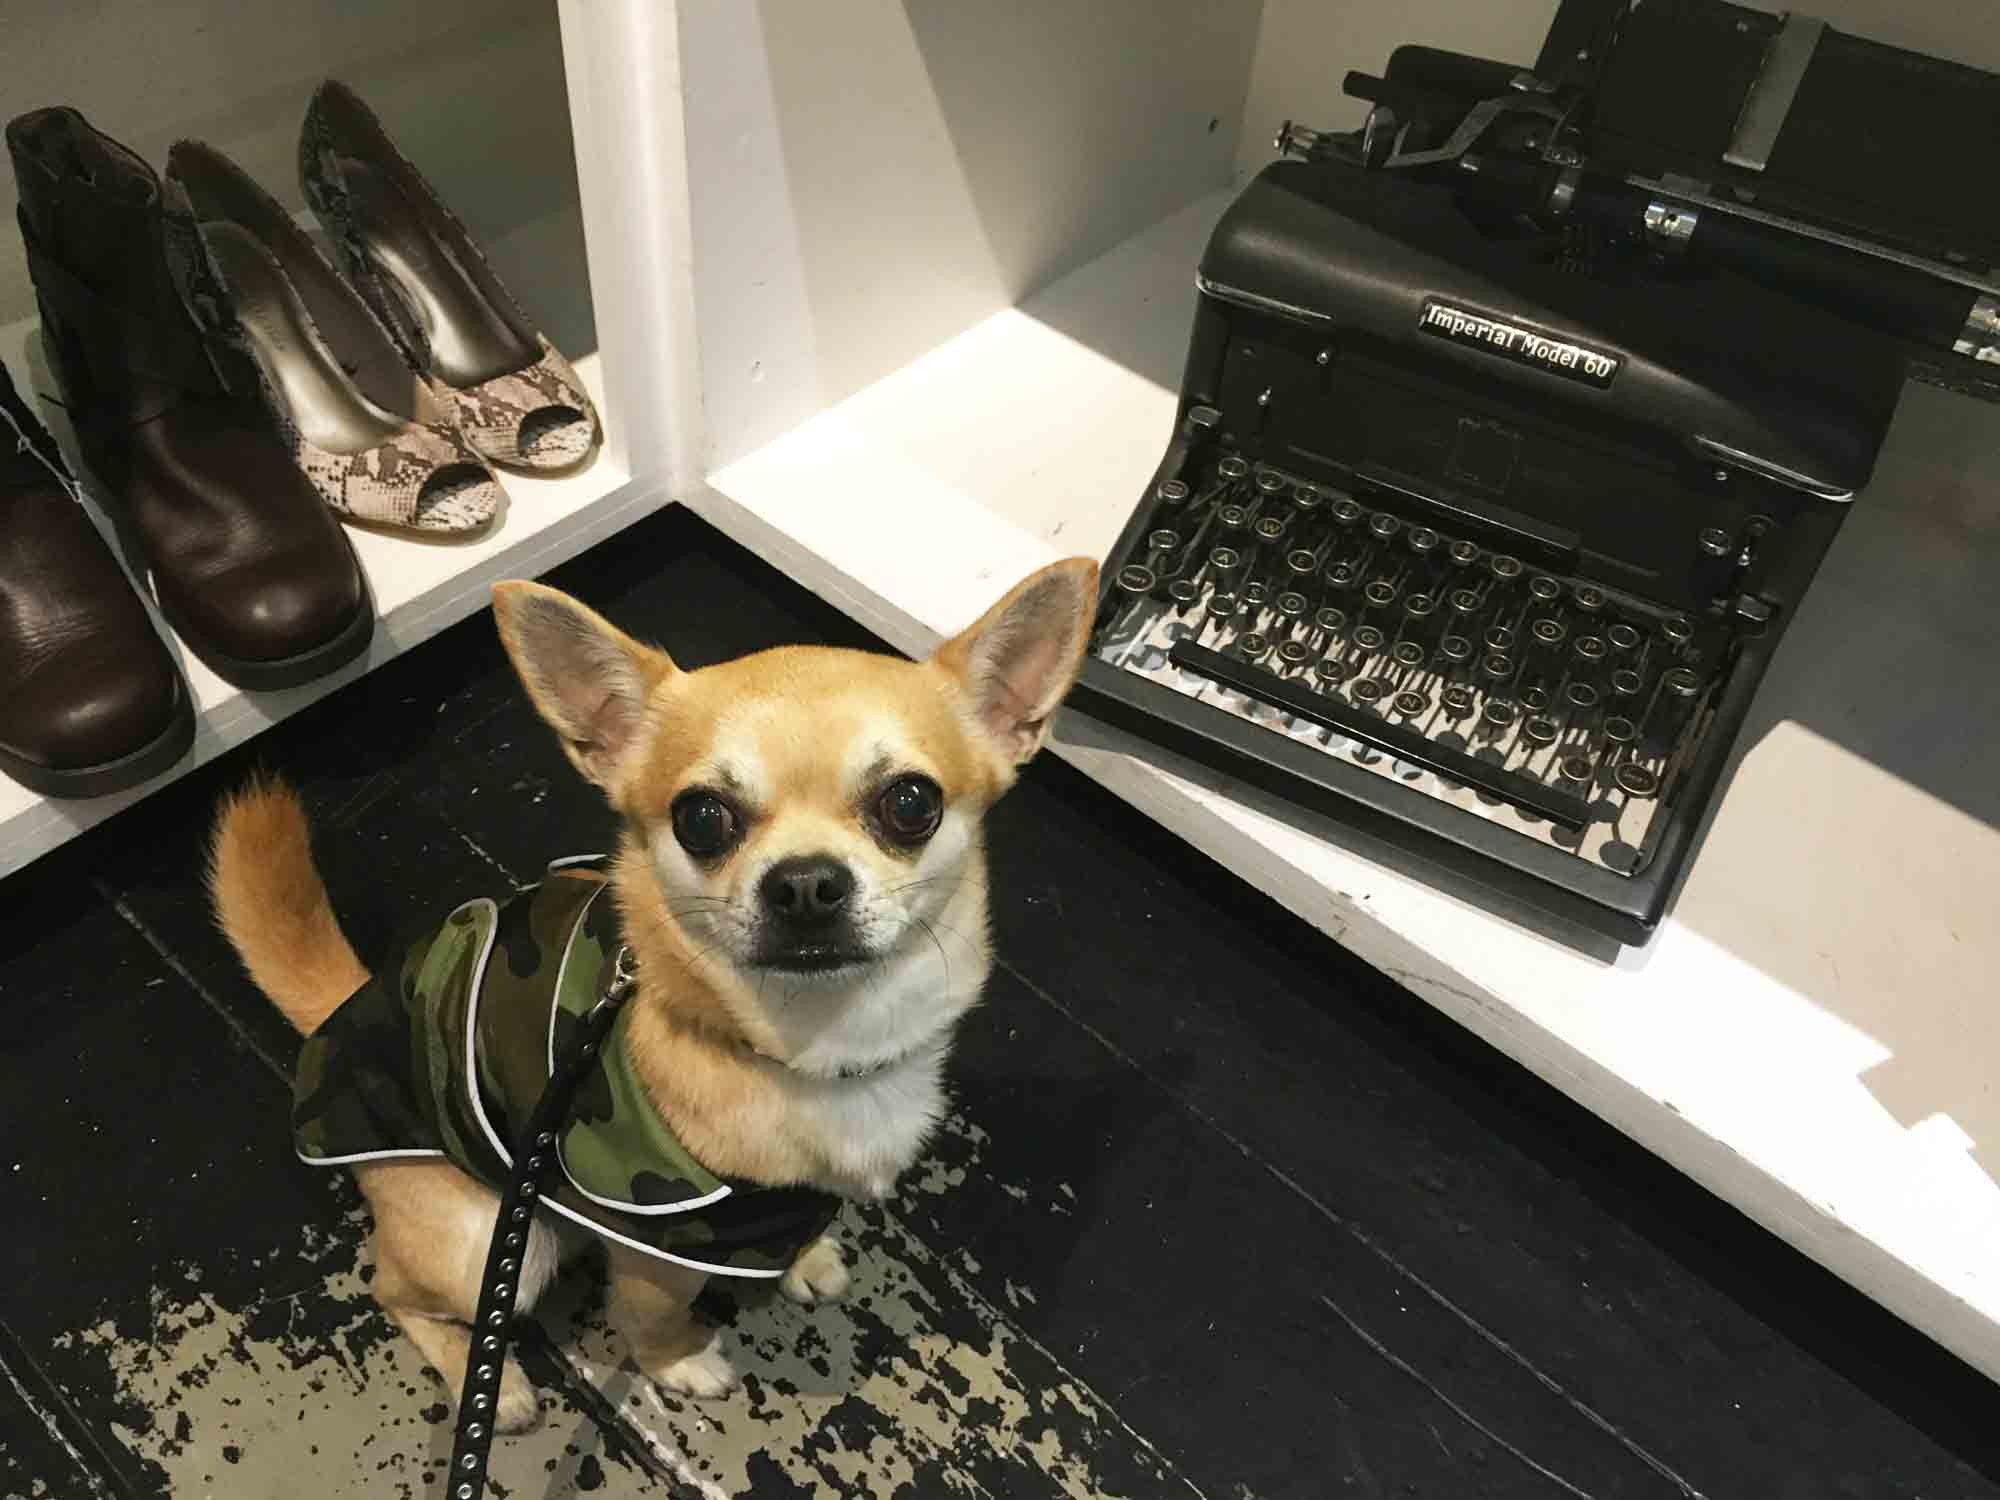 Chilliwawa with a typewriter